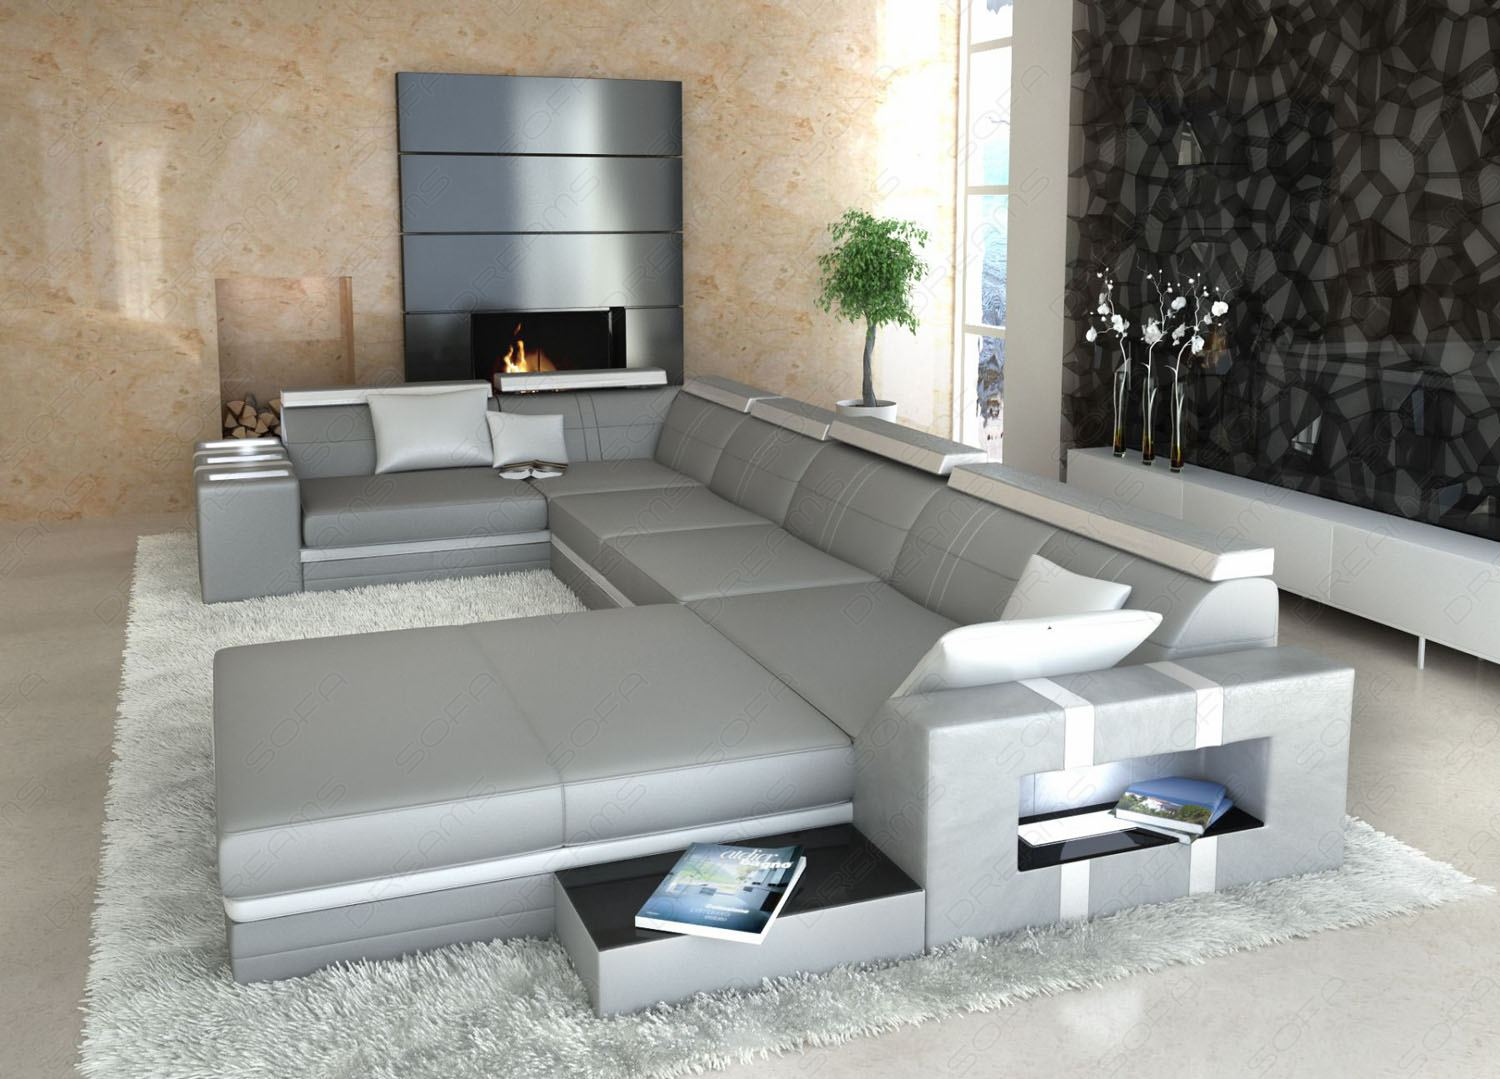 ledersofa asti u form grau weiss wohnlandschaft. Black Bedroom Furniture Sets. Home Design Ideas